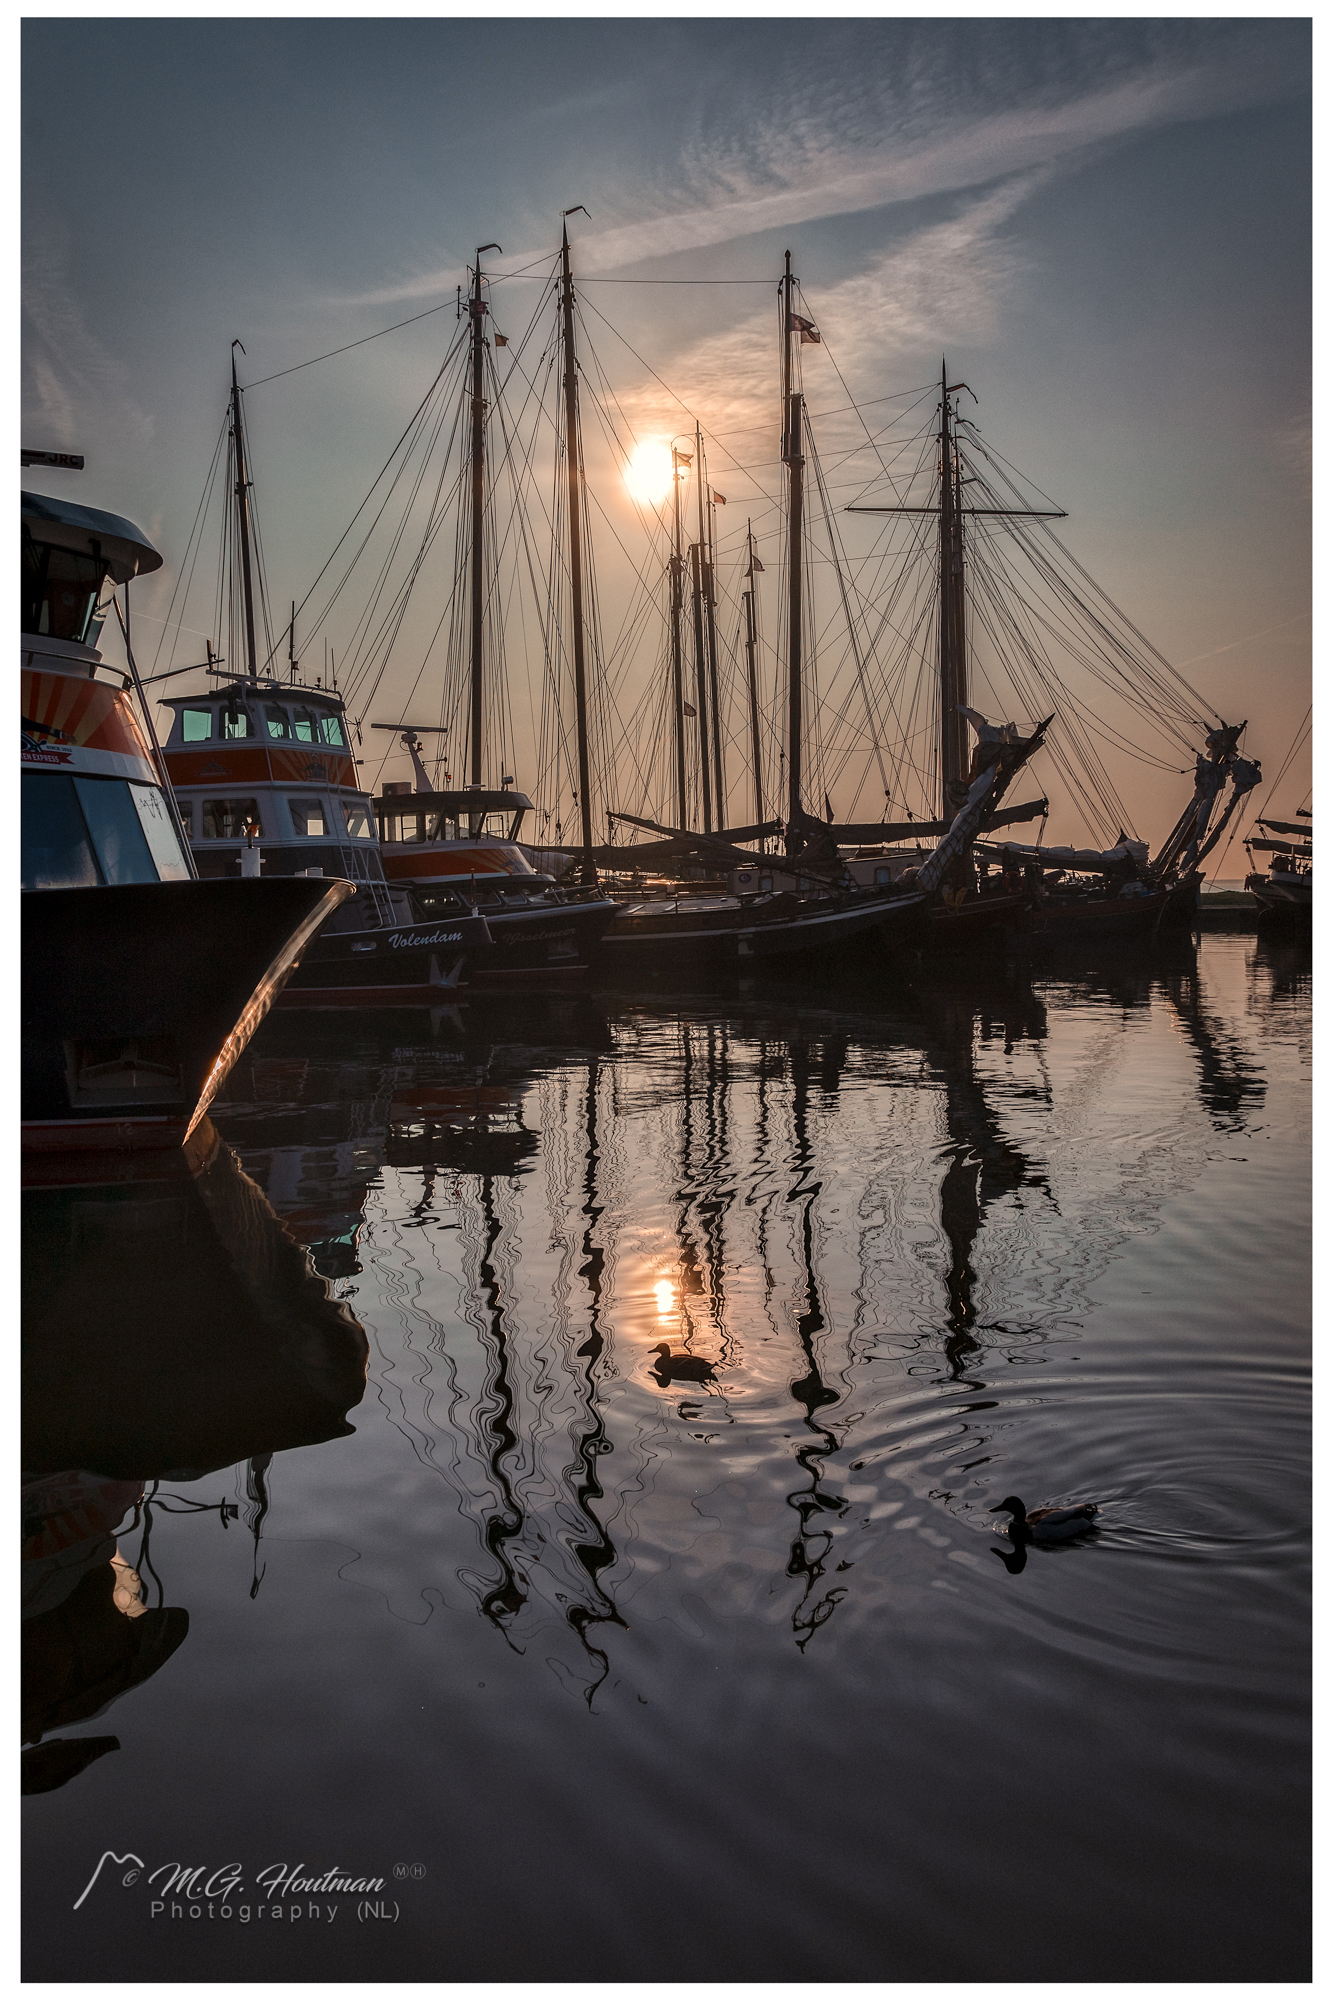 The day starts in the harbor